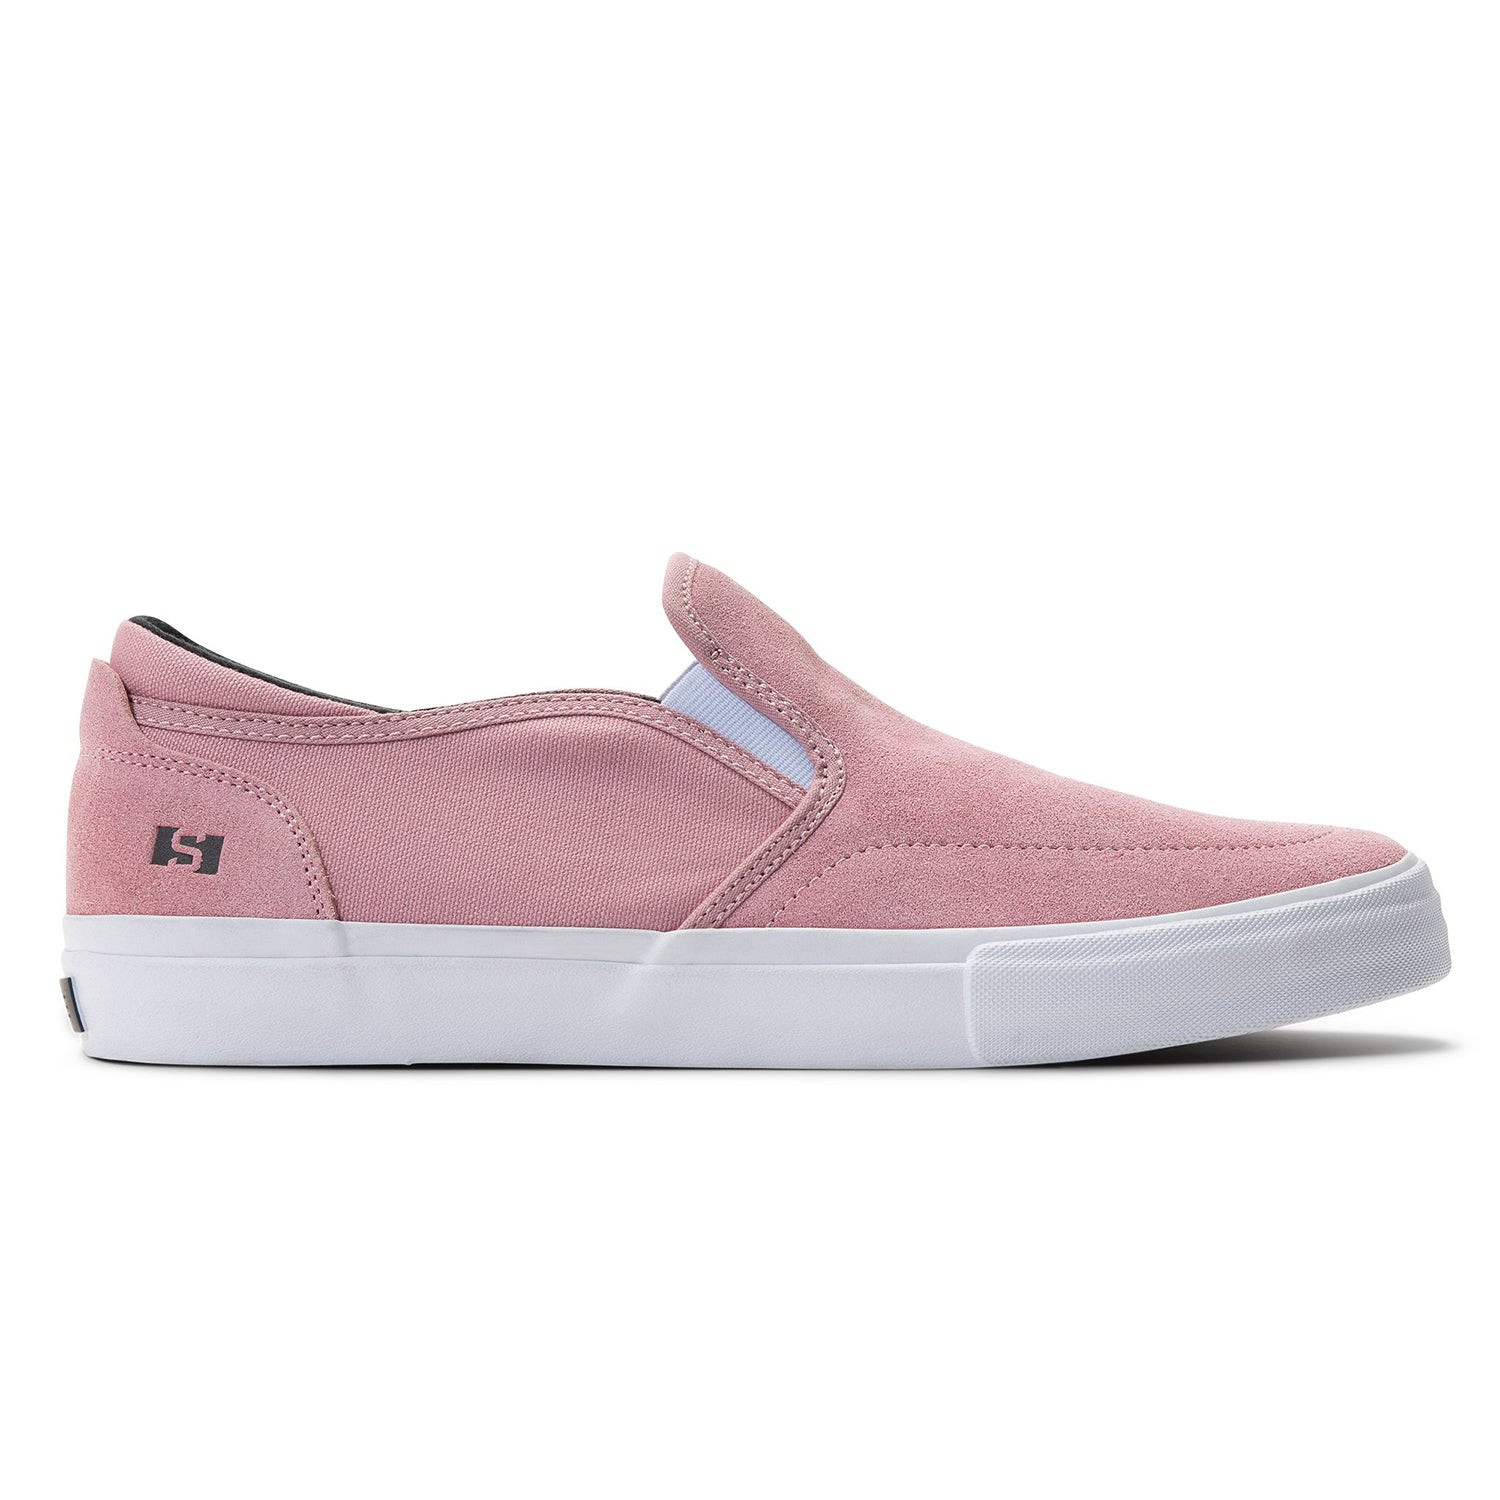 State Footwear Keys Slip On Candy Pink